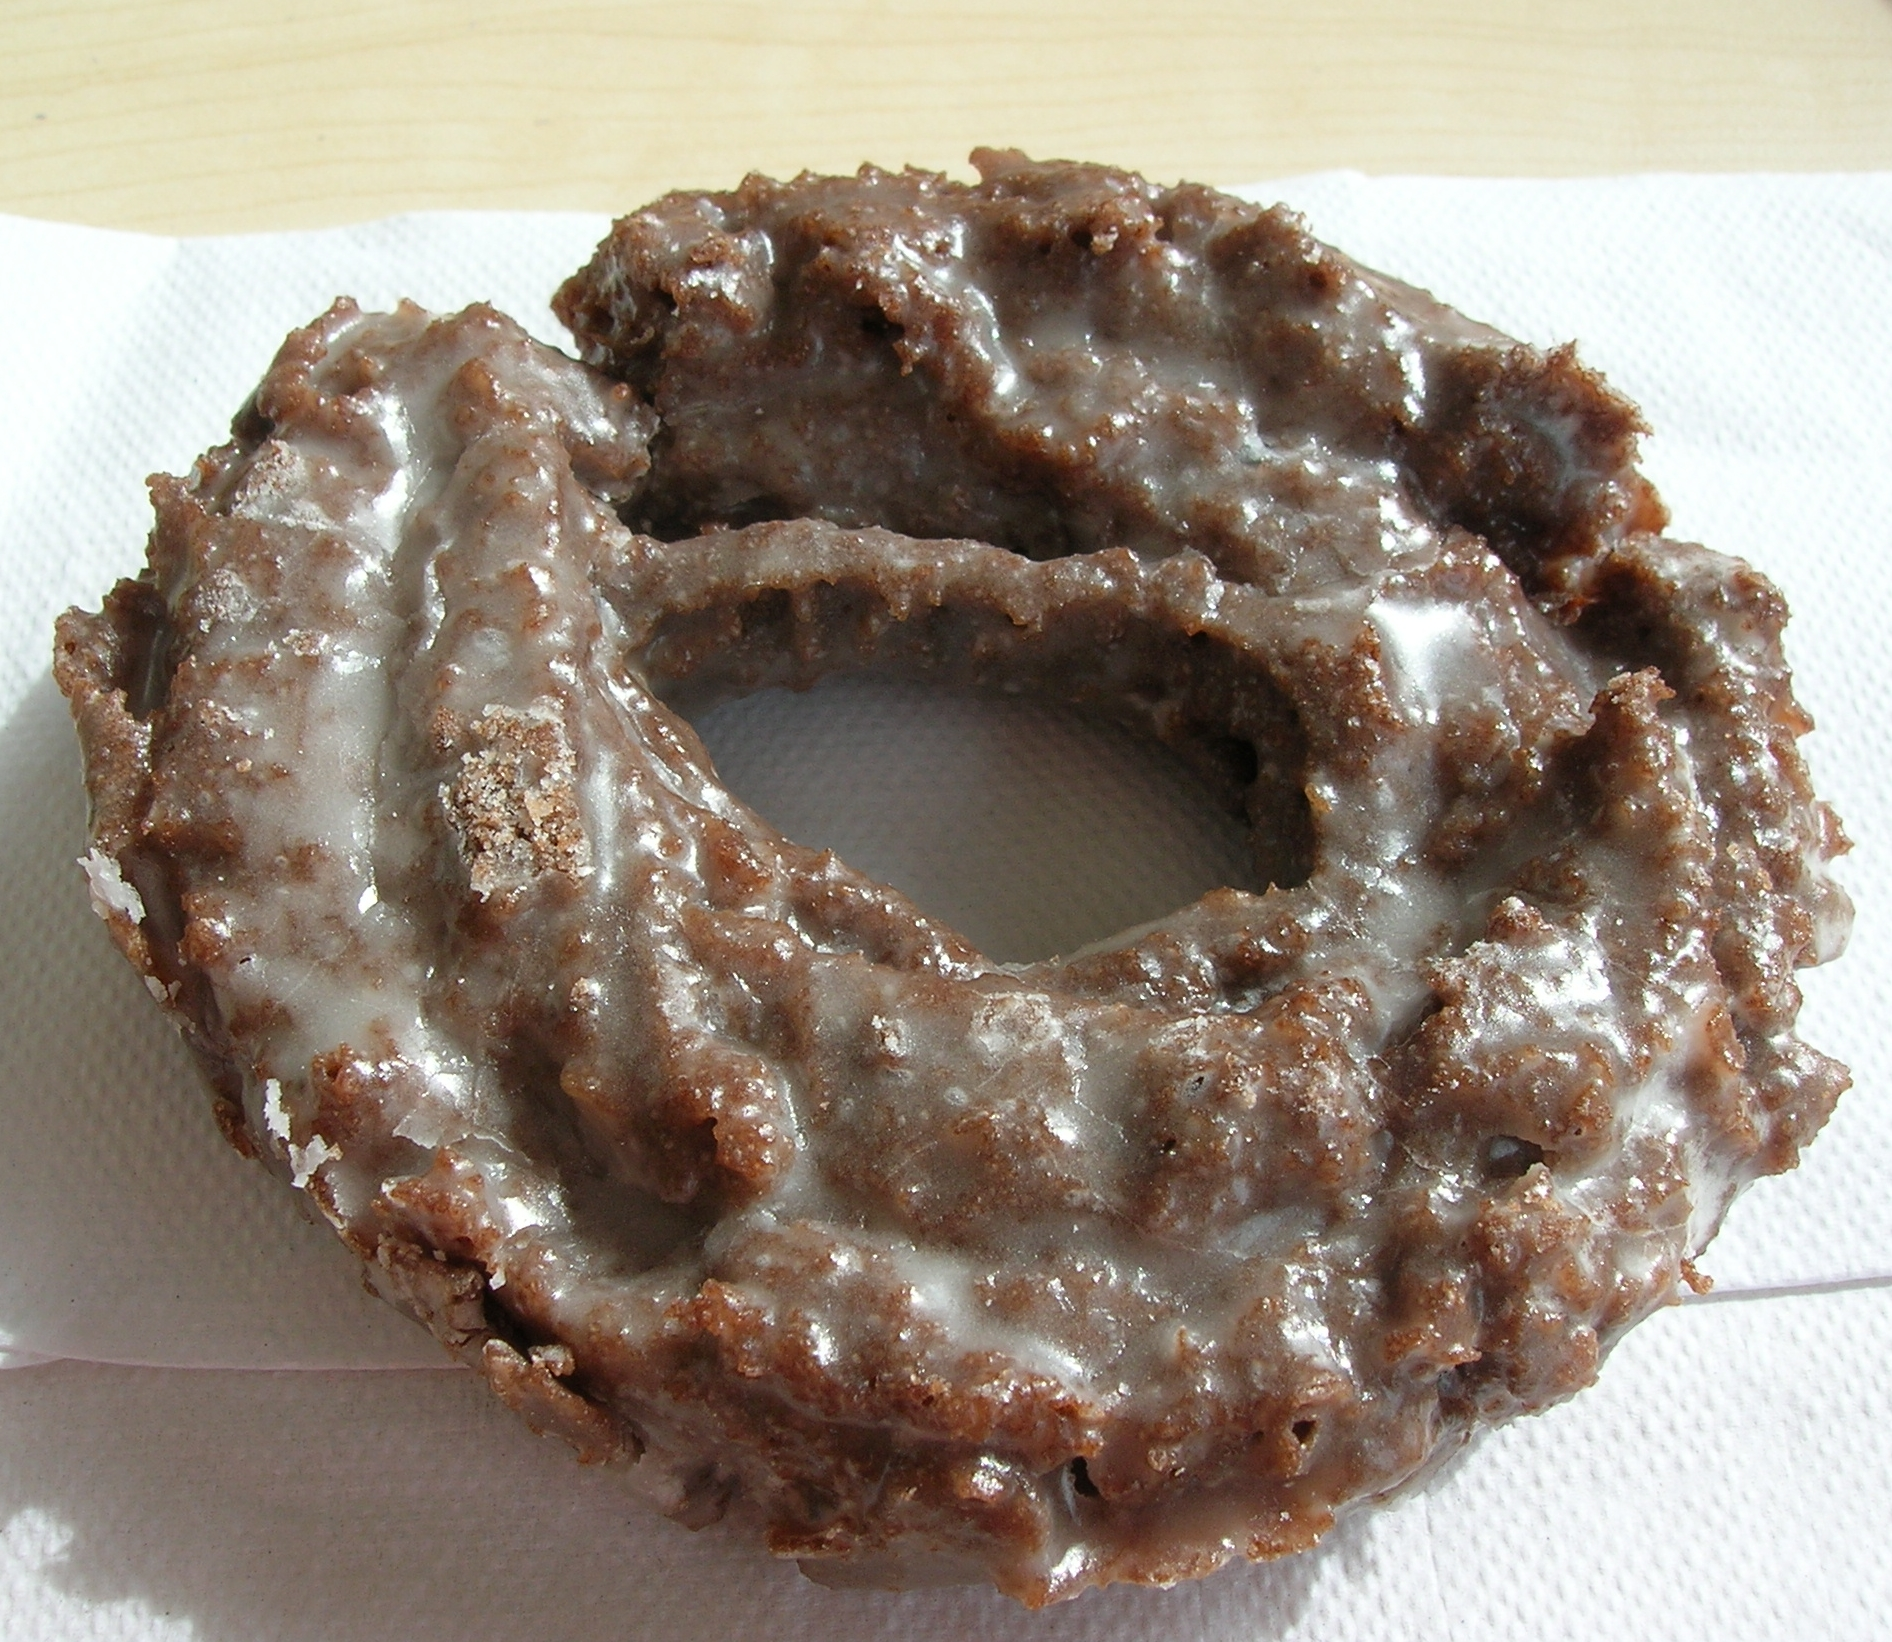 Chocolate Sour Cream Doughnut Recipe